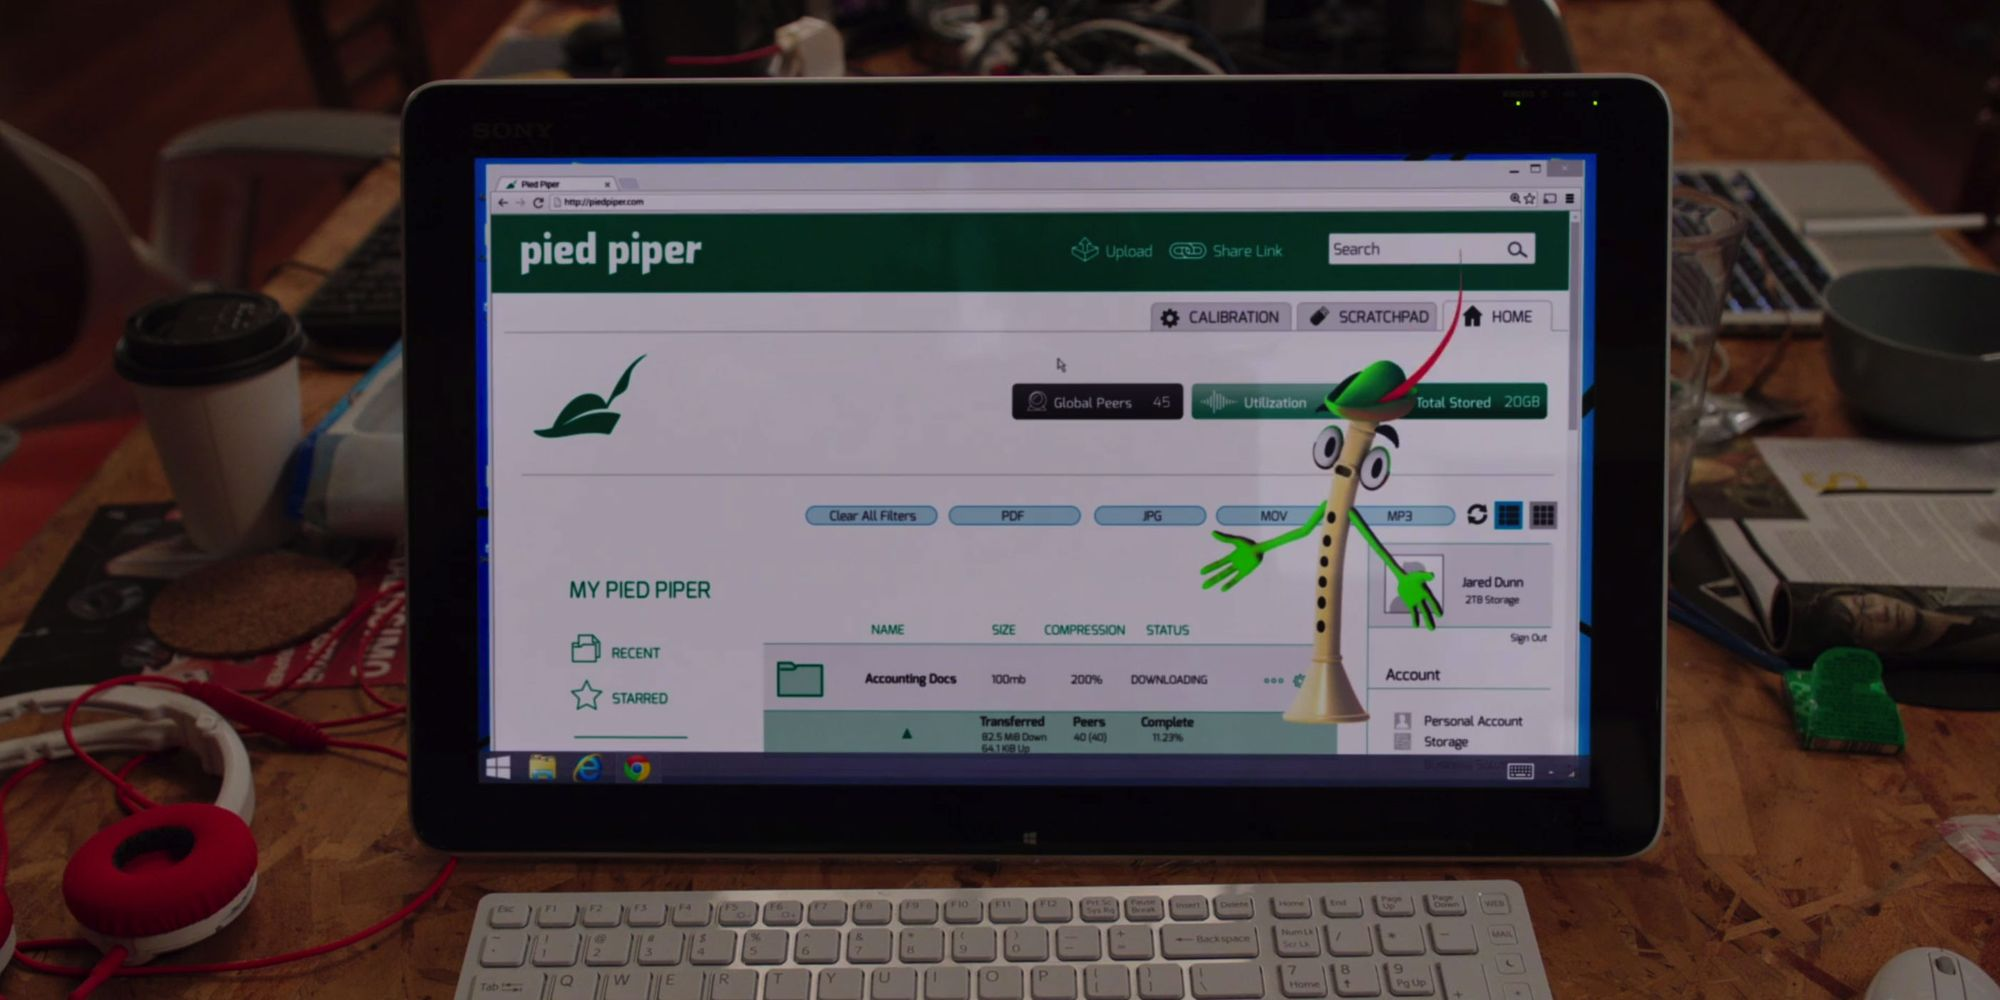 Fictional Pied Piper's app tanked because of a bad user experience